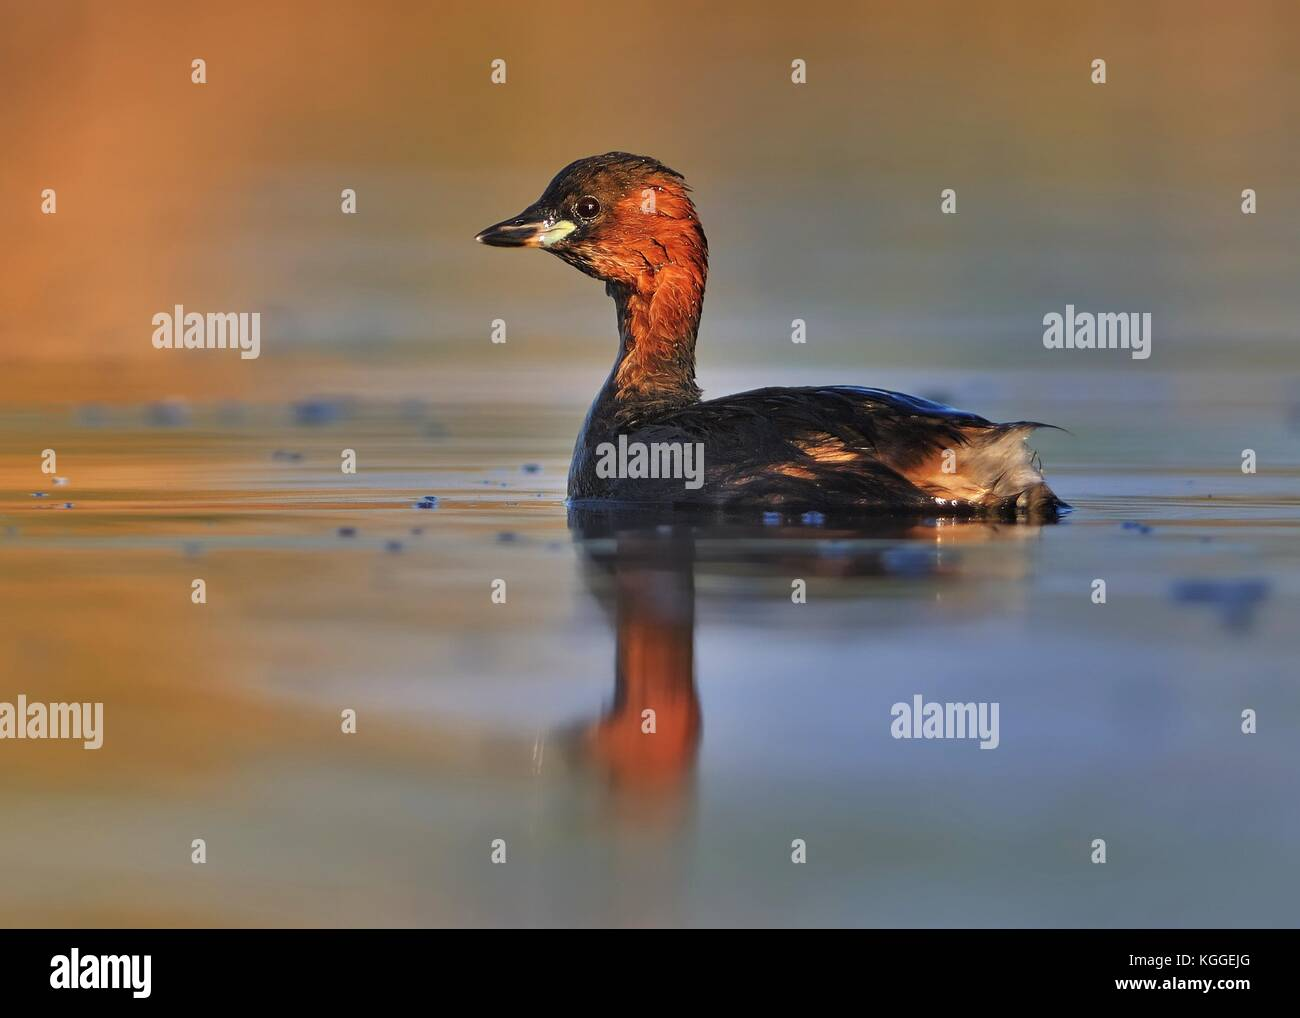 Little Grebe - Tachybaptus ruficollis swimming on the water - Stock Image